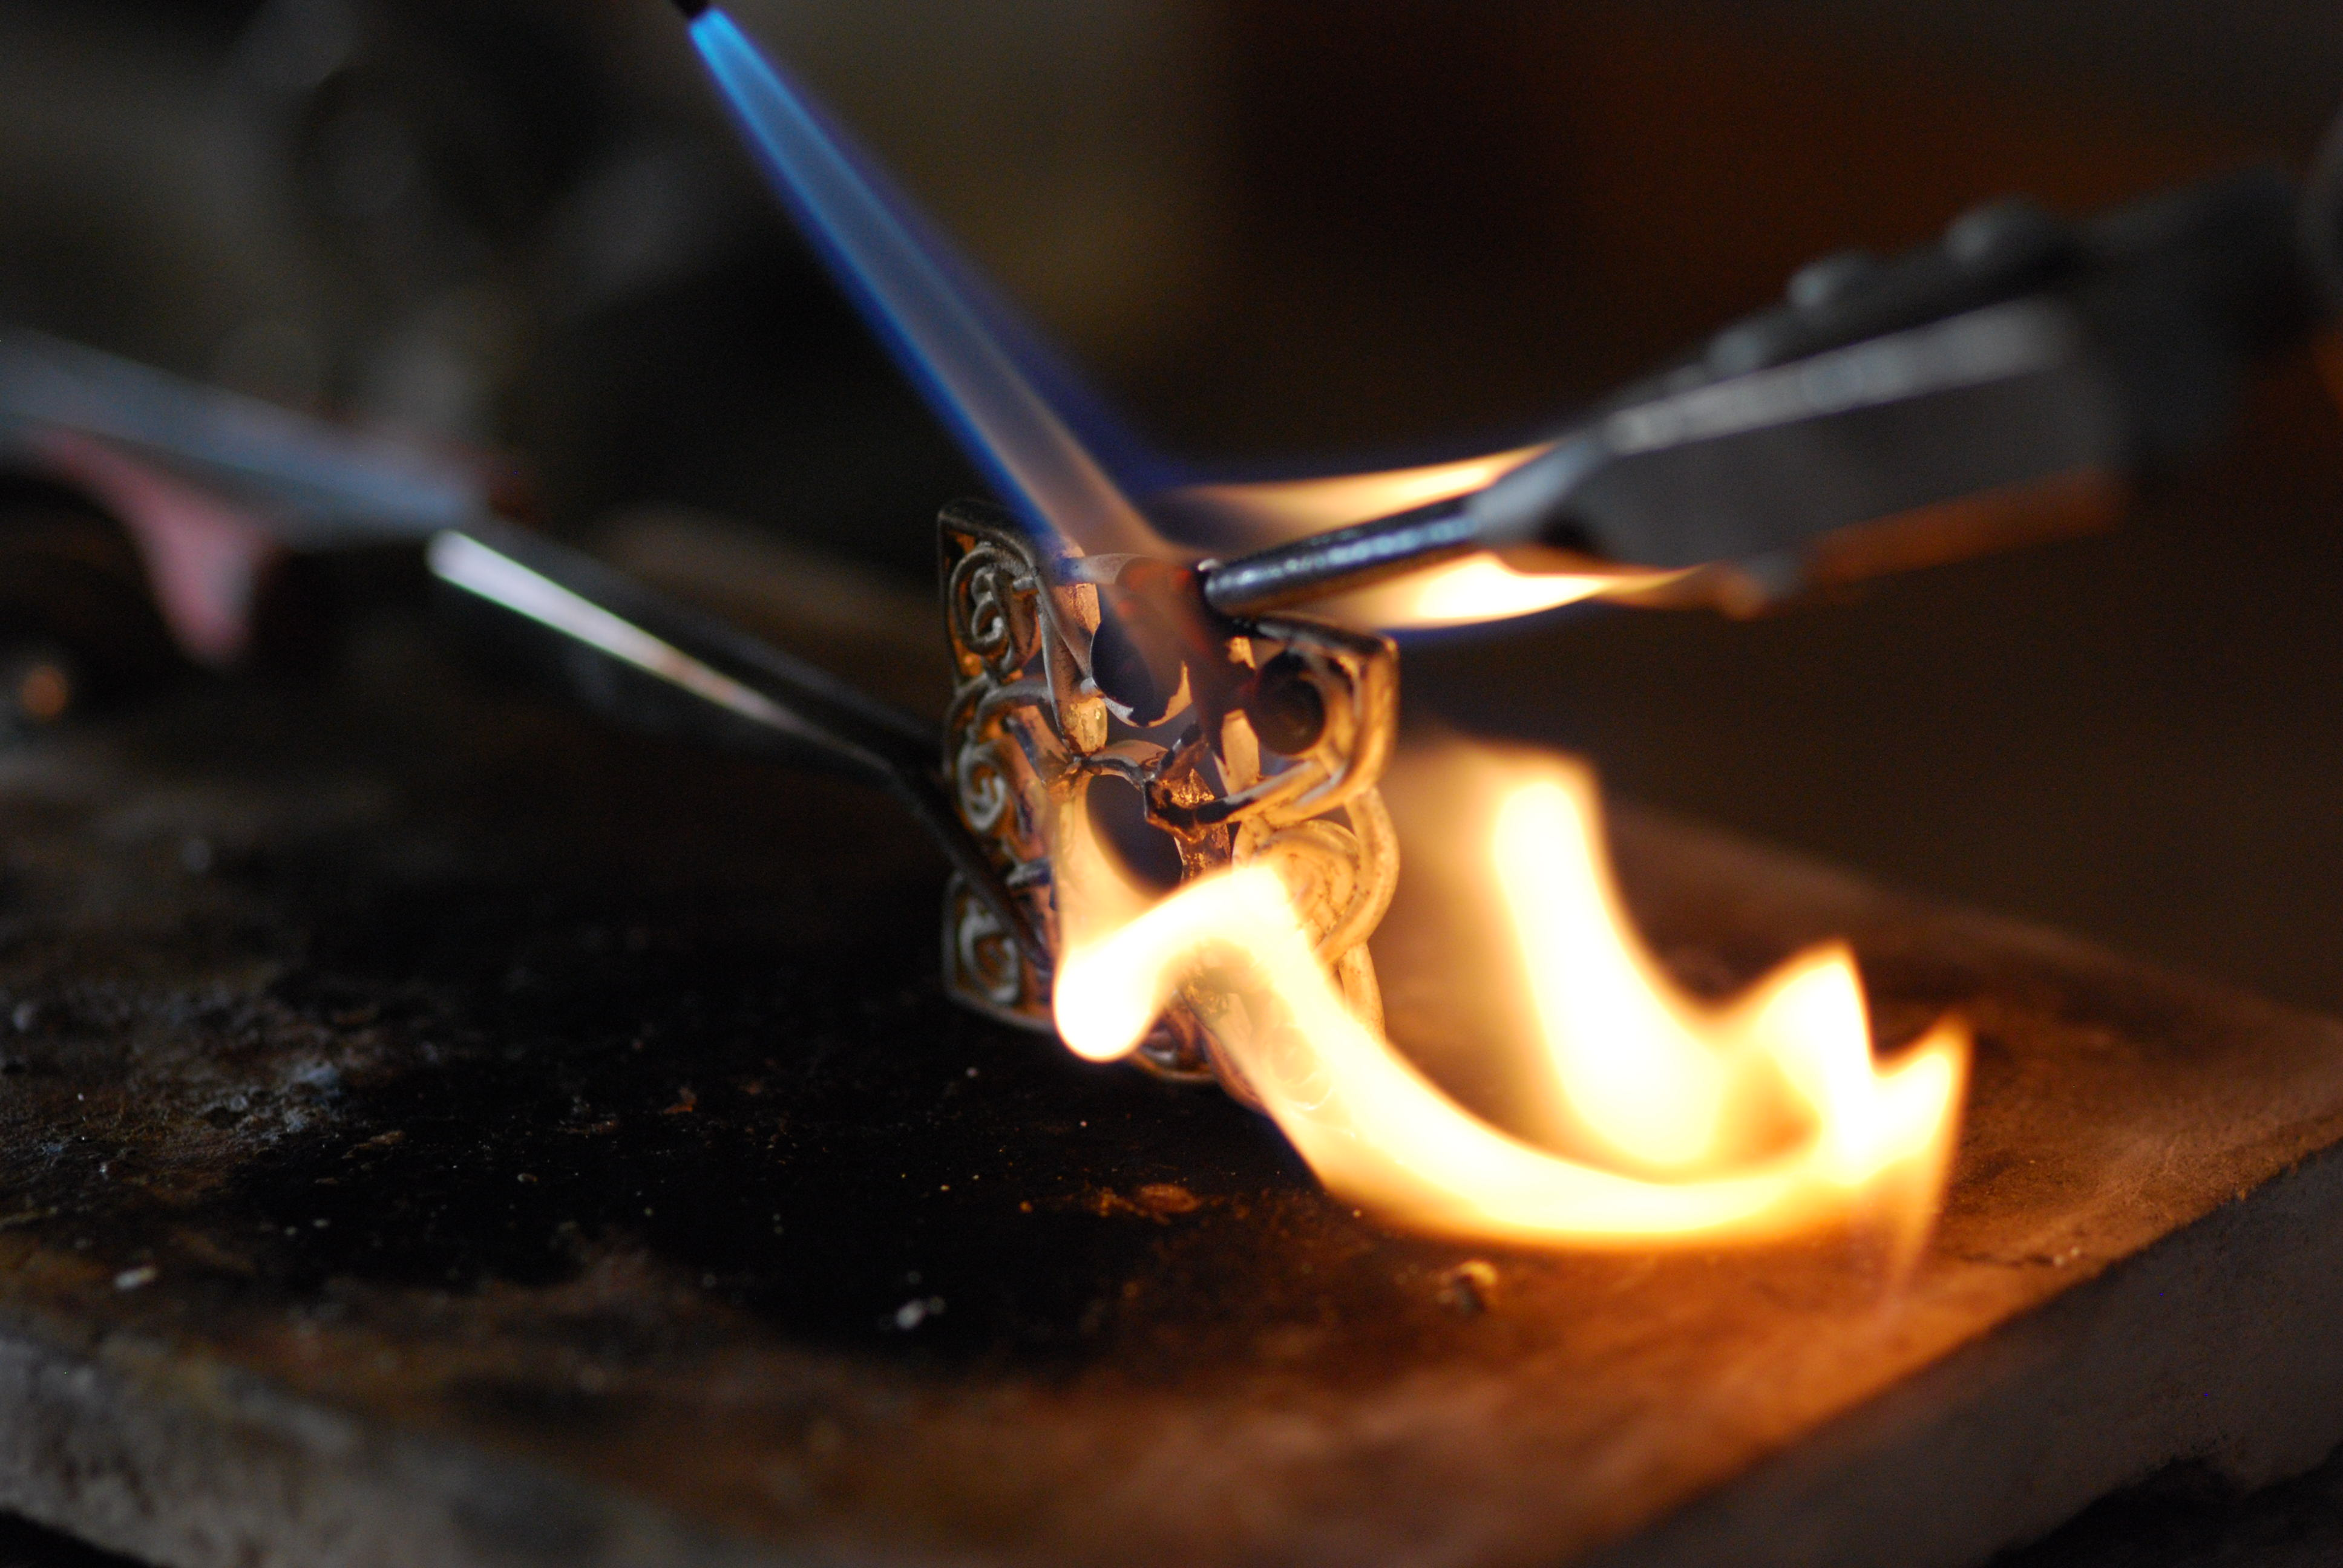 Torch firing sterling silver jewelry piece at jewelry bench